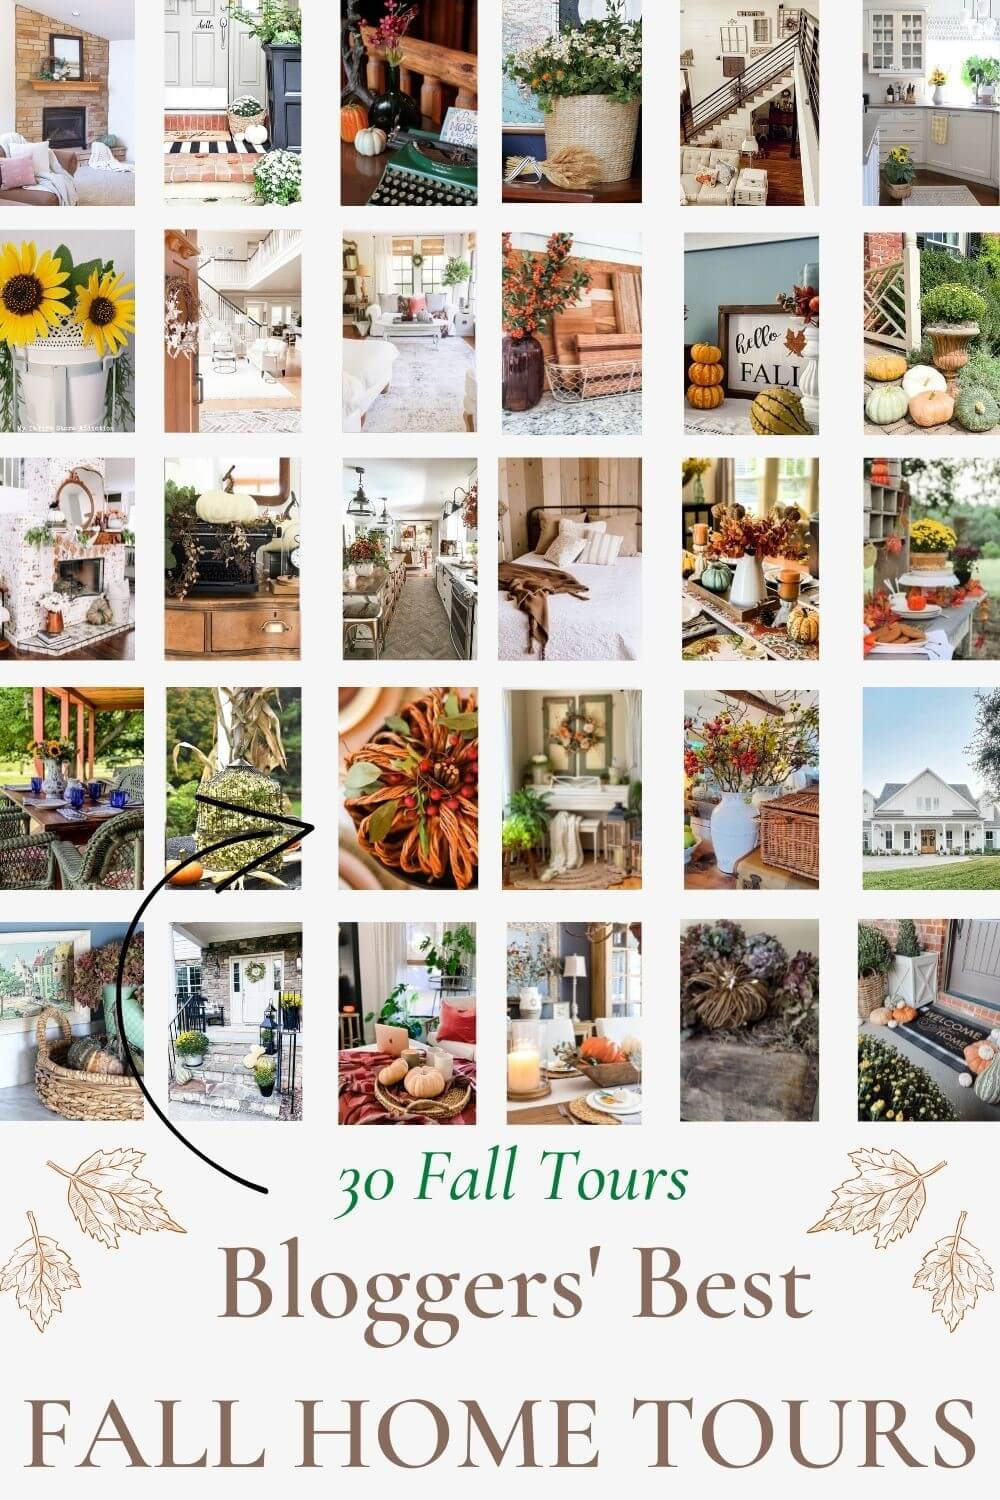 https://myfamilythyme.com/wp-content/uploads/2021/09/Bloggers-Best-Fall-Home-Tours-Pinnable-Image-1-1.jpg